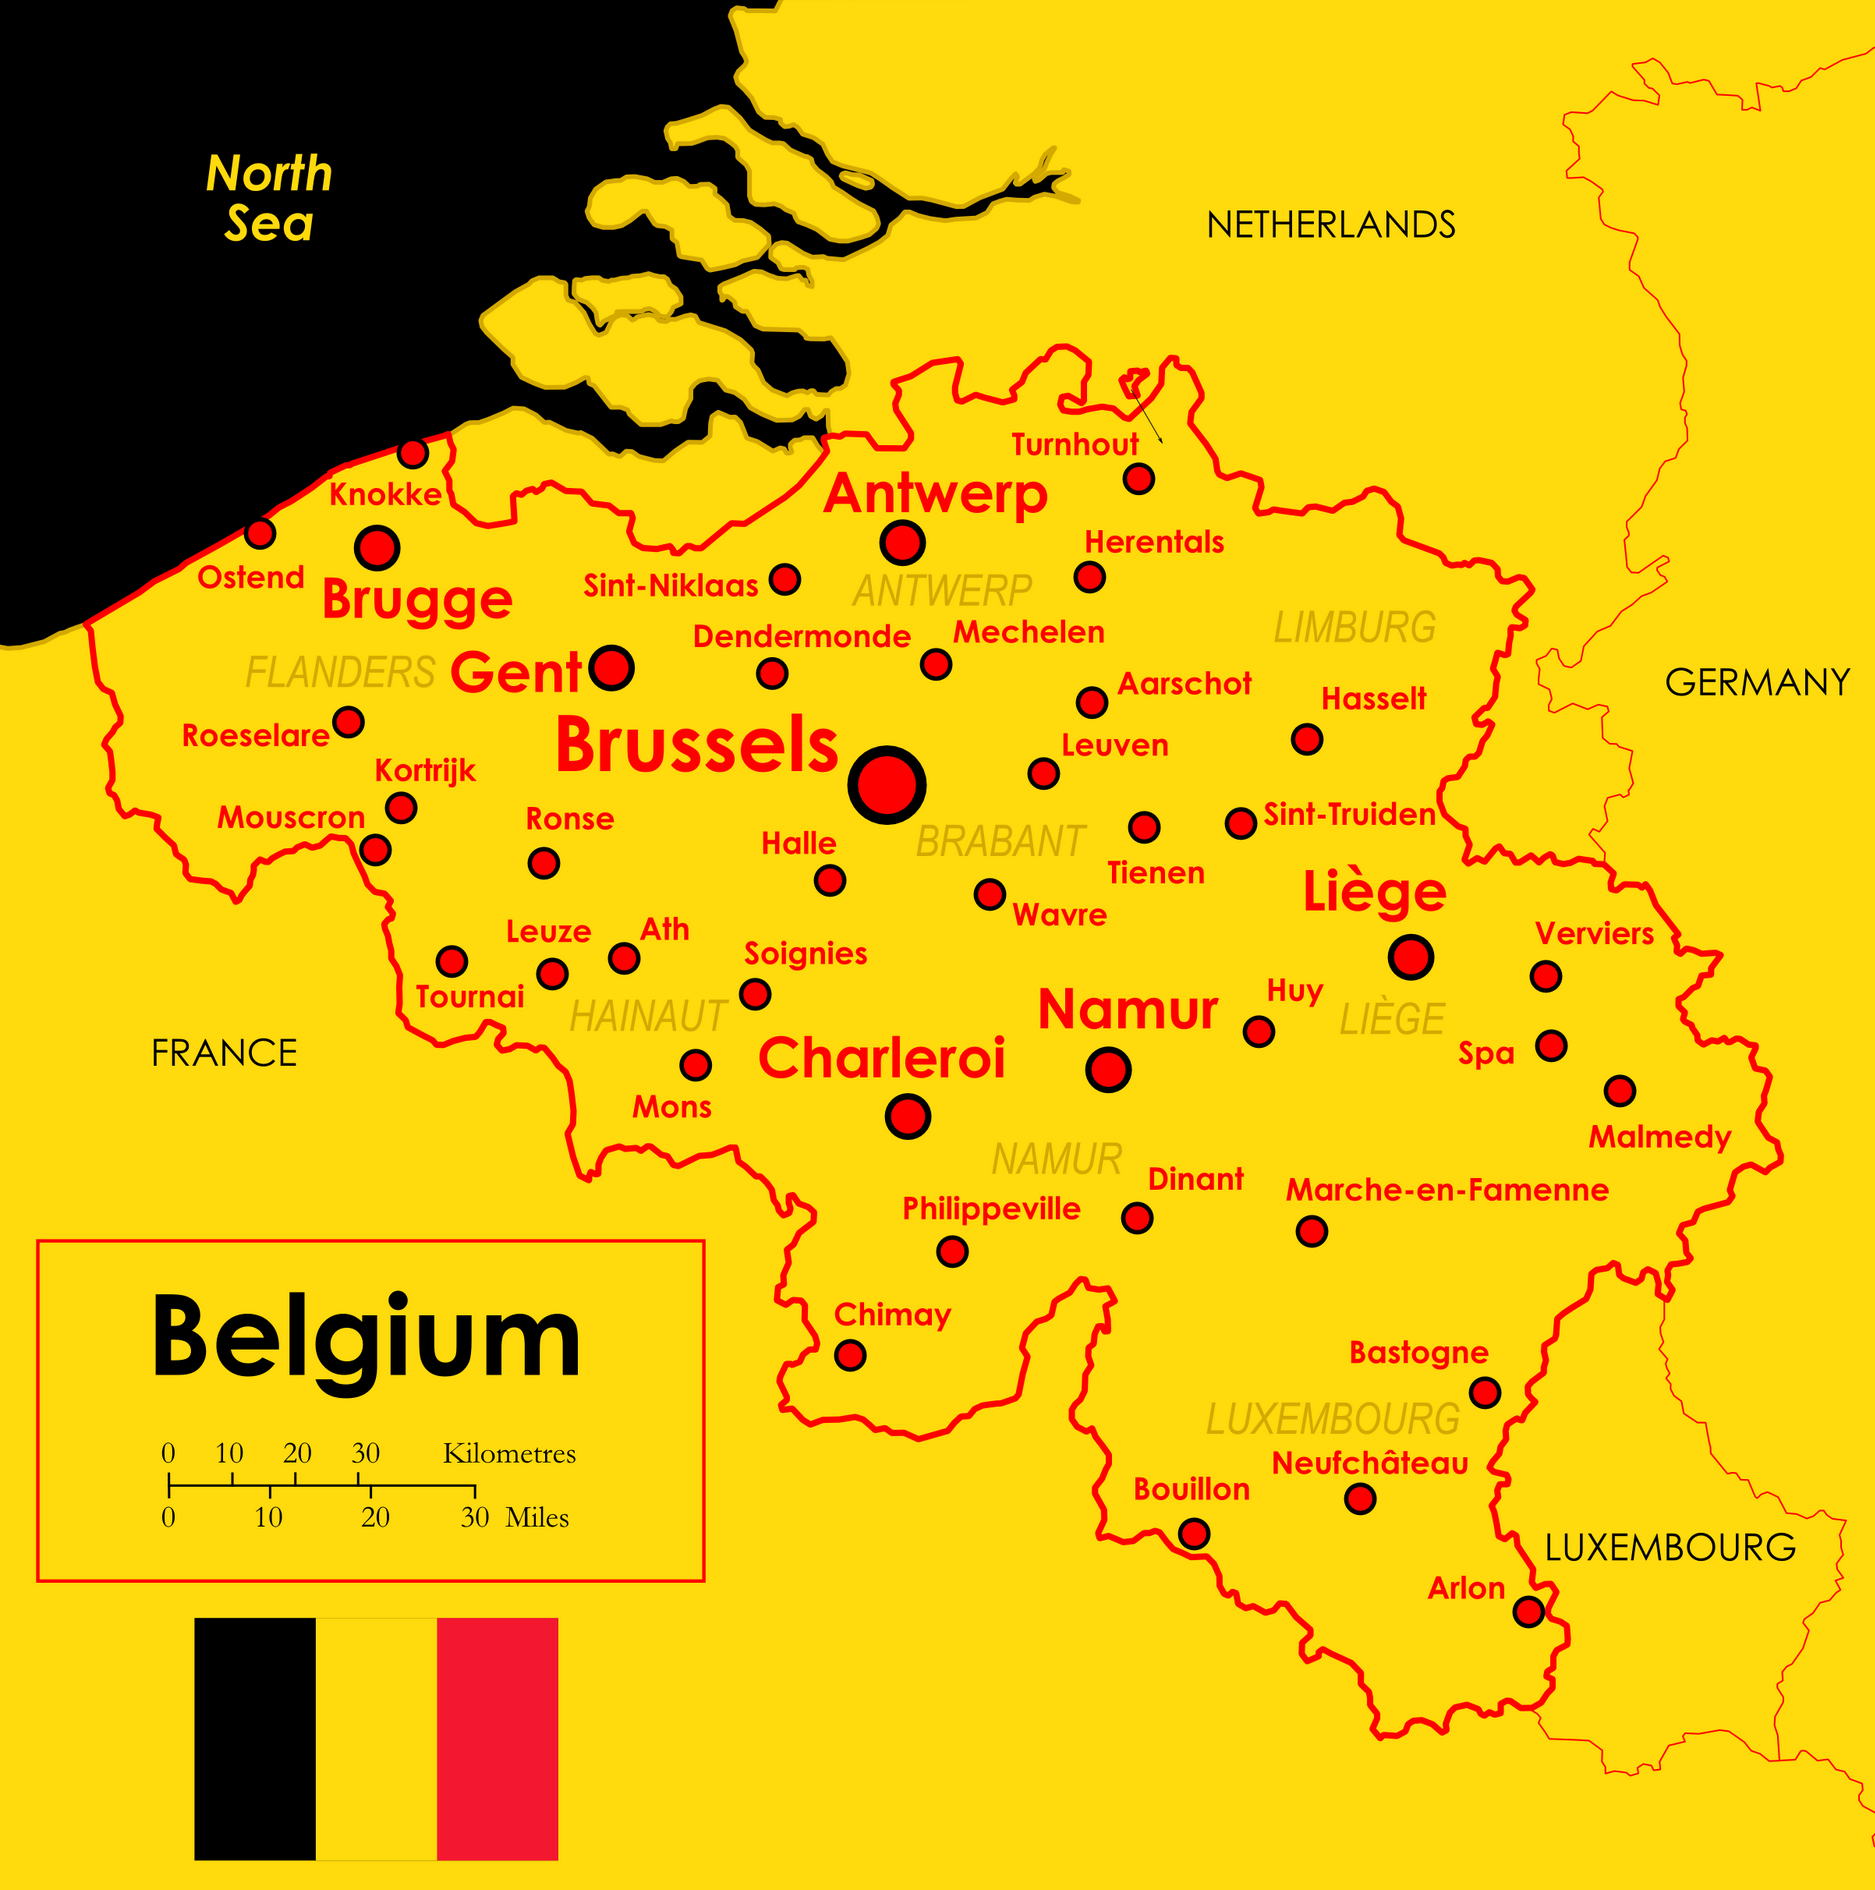 FileMap mapa belgii belgiumpng Wikimedia Commons – Map of Belguim